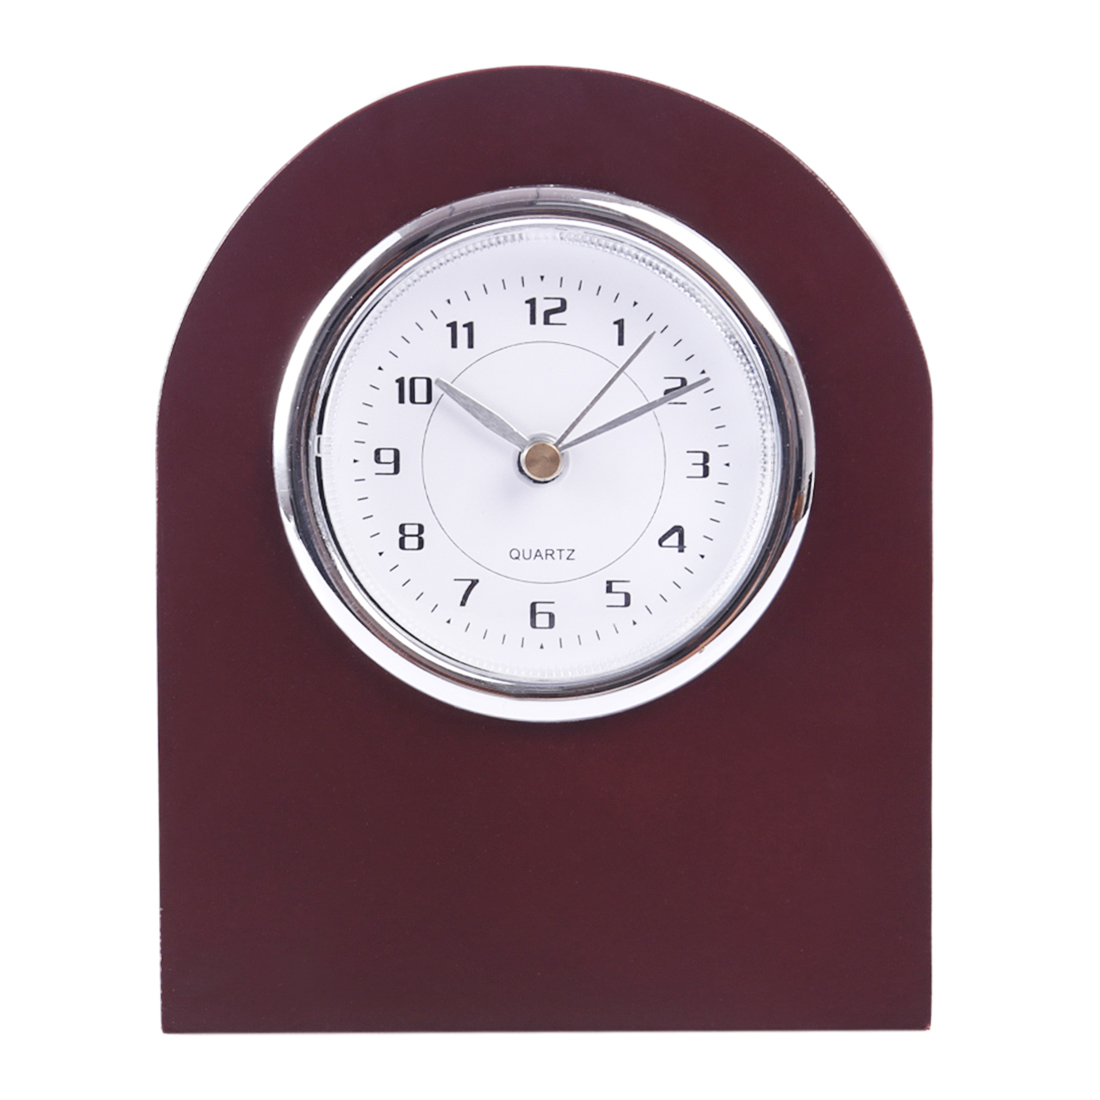 New Arrival Retro Style Mini Table Clock Vintage Desk Clocks for Home Decor Royalty Sitting Room Bedroom Workclock Hot Sale